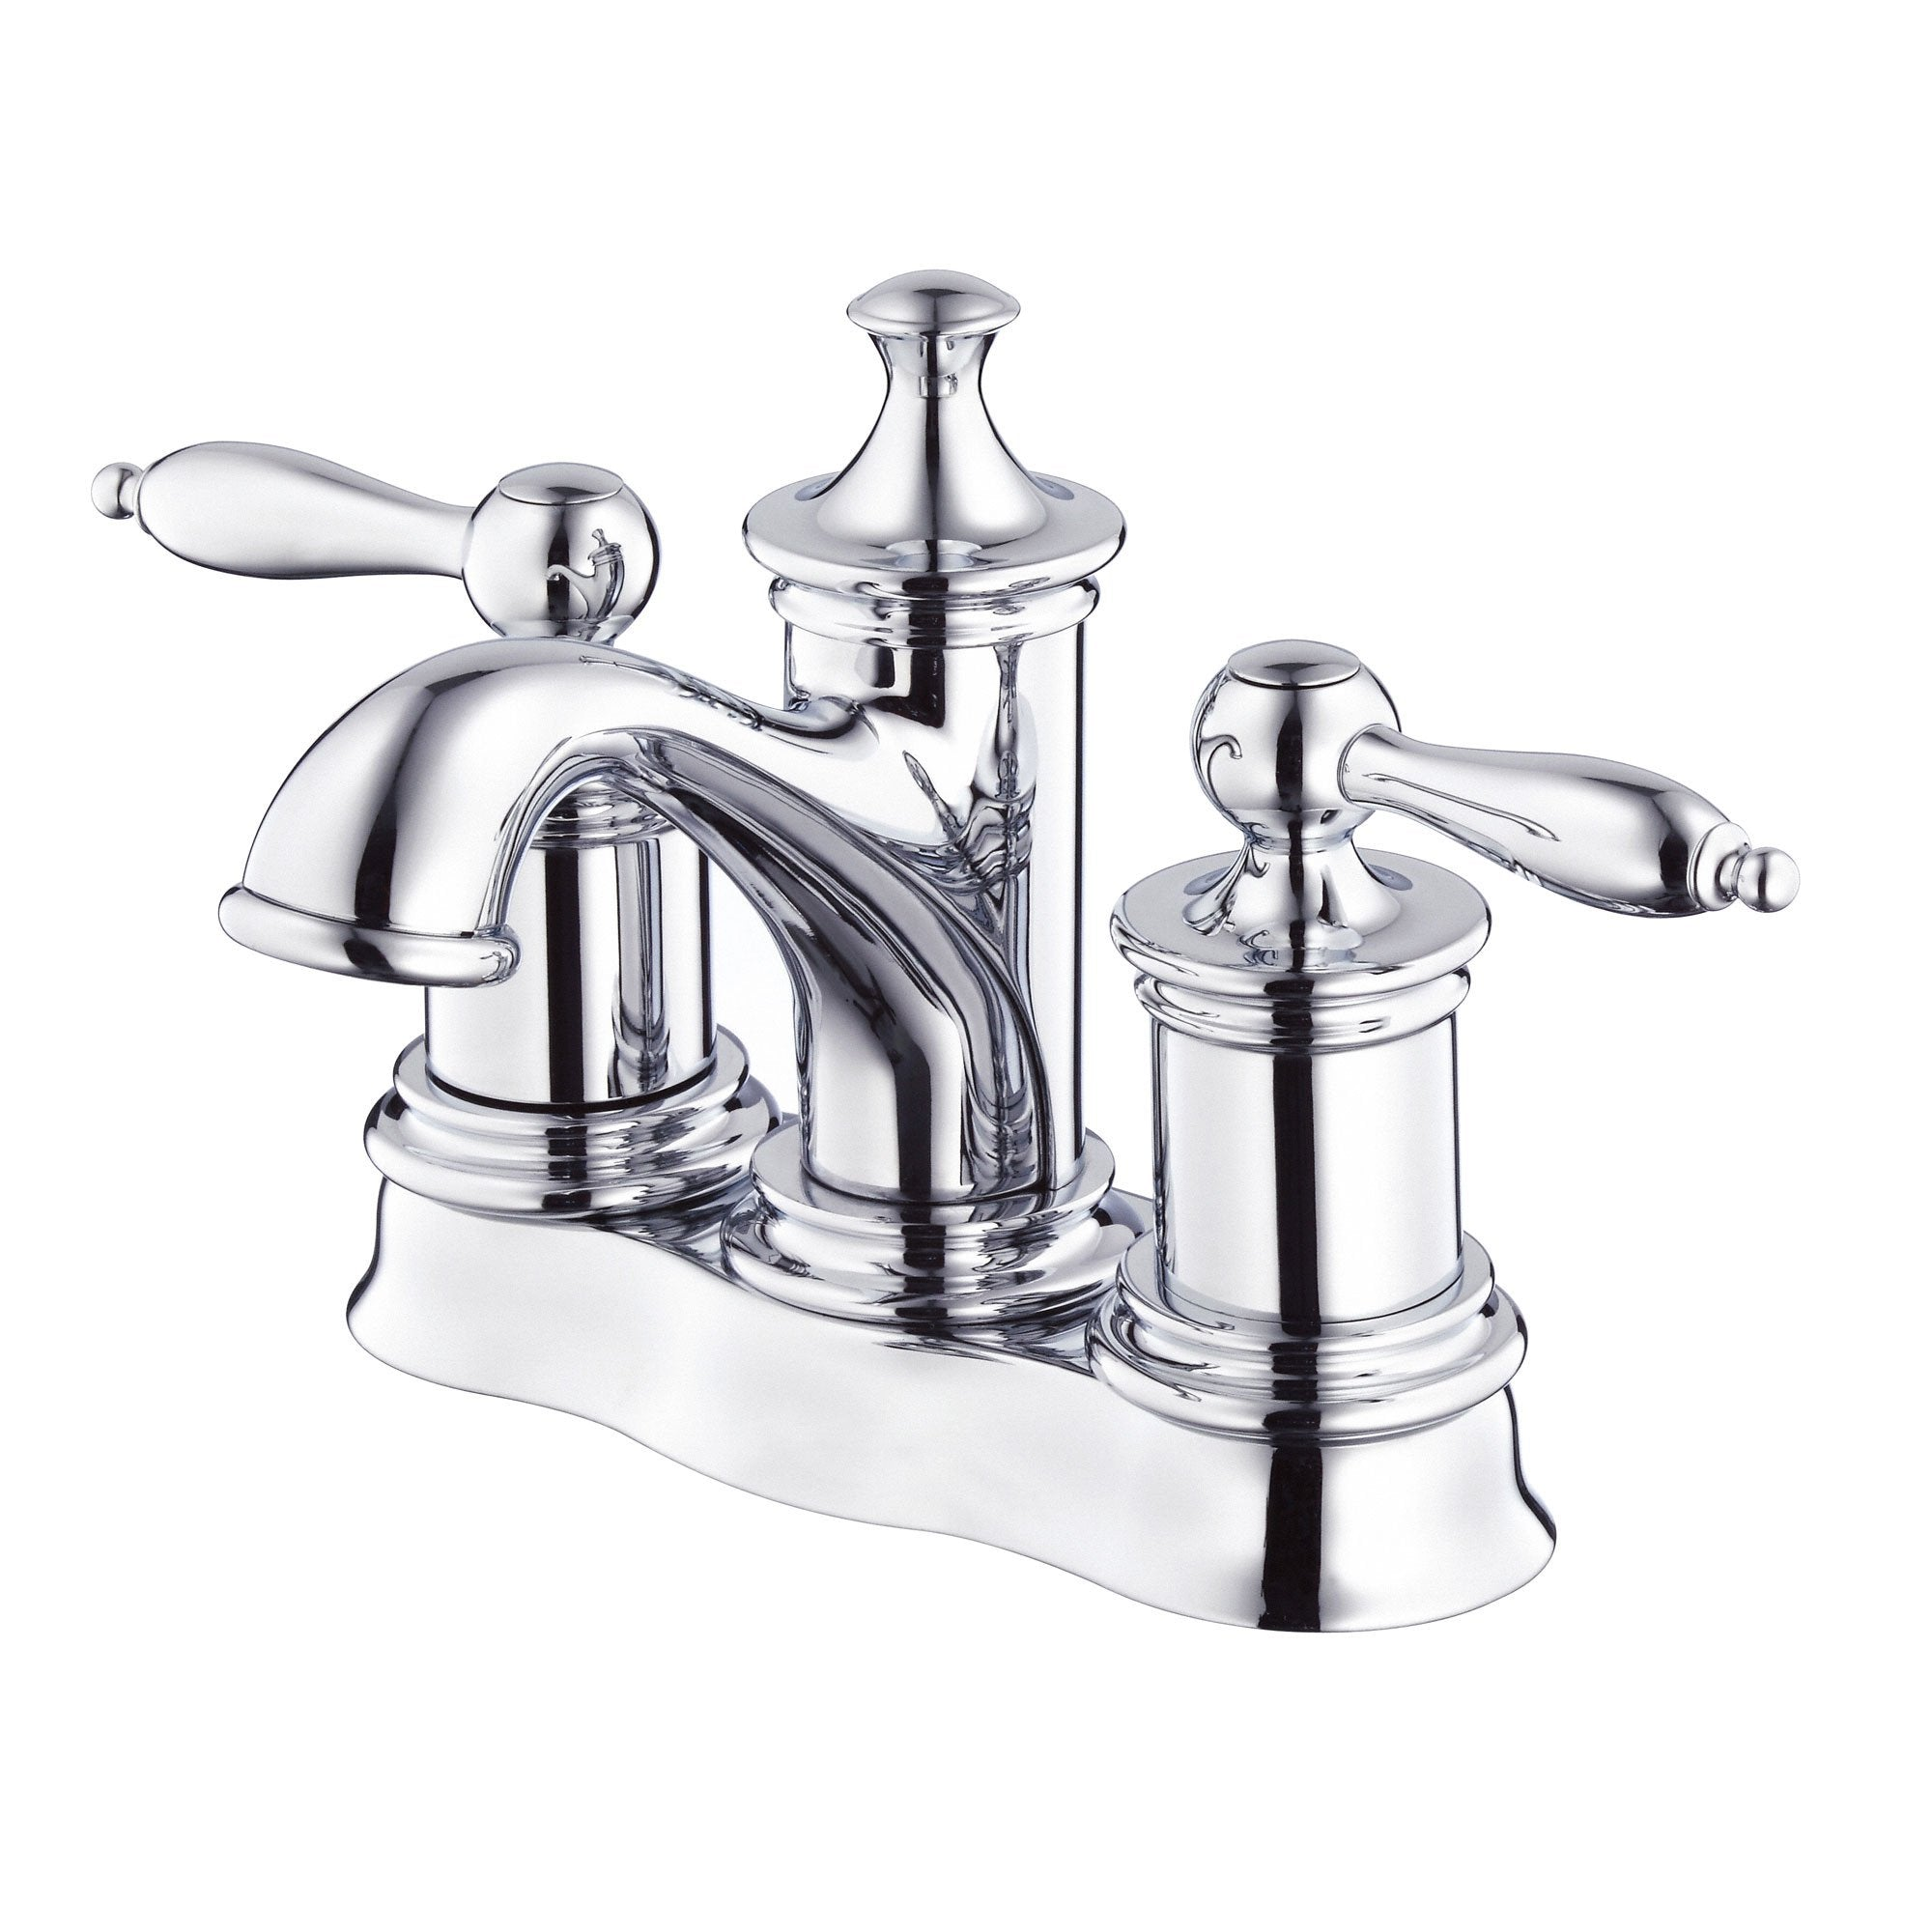 Danze Prince Chrome Centerset Bathroom Sink Faucet with Touch Drain